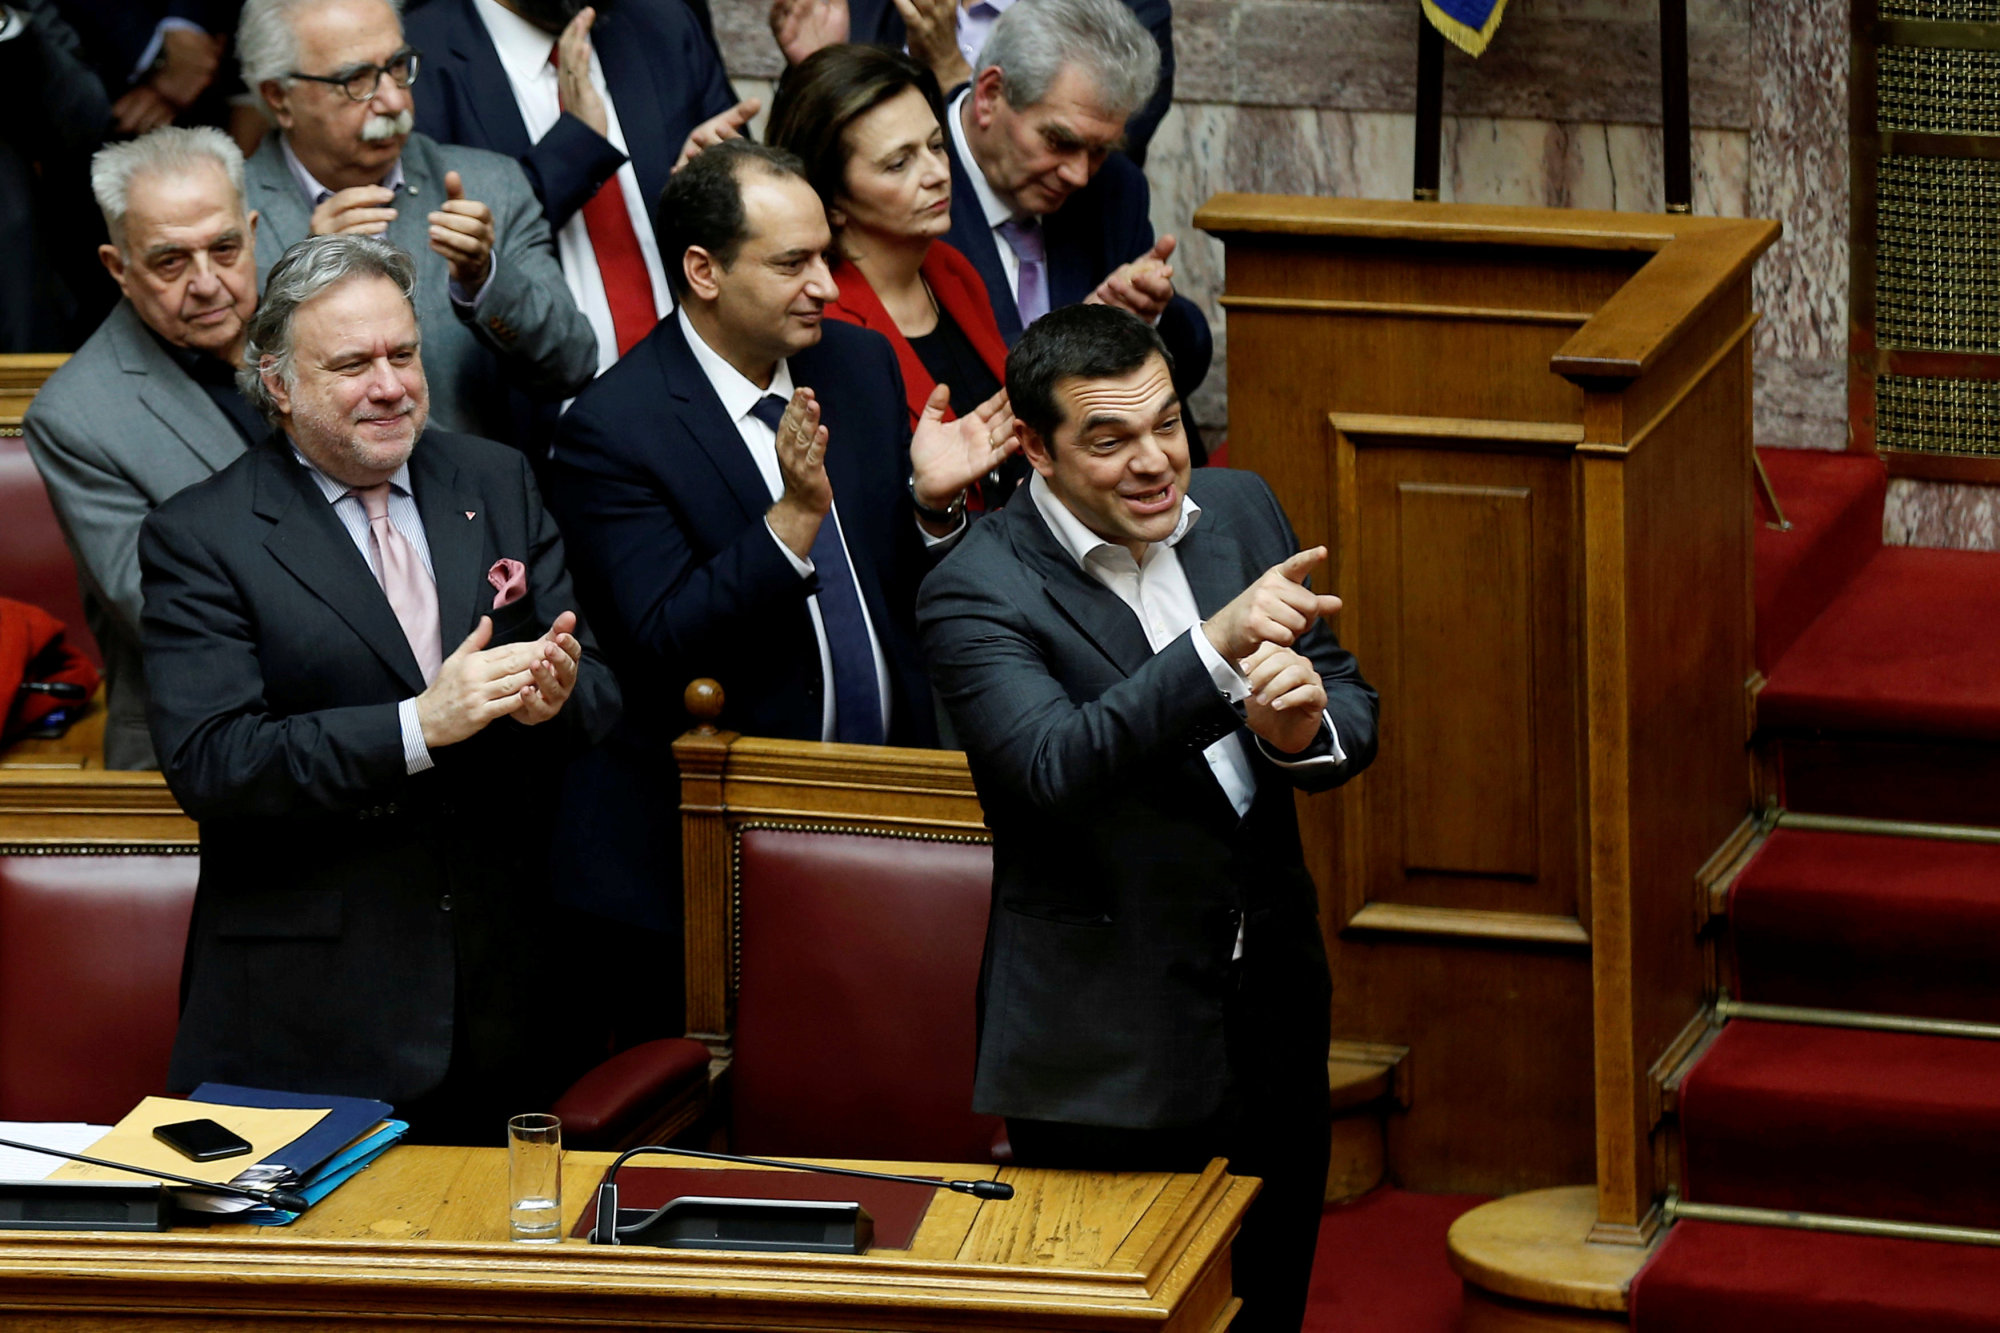 Greek Prime Minister Alexis Tsipras and members of his government applaud after a vote on an accord between Greece and Macedonia changing the former Yugoslav republic's name in Athens on Friday.   REUTERS